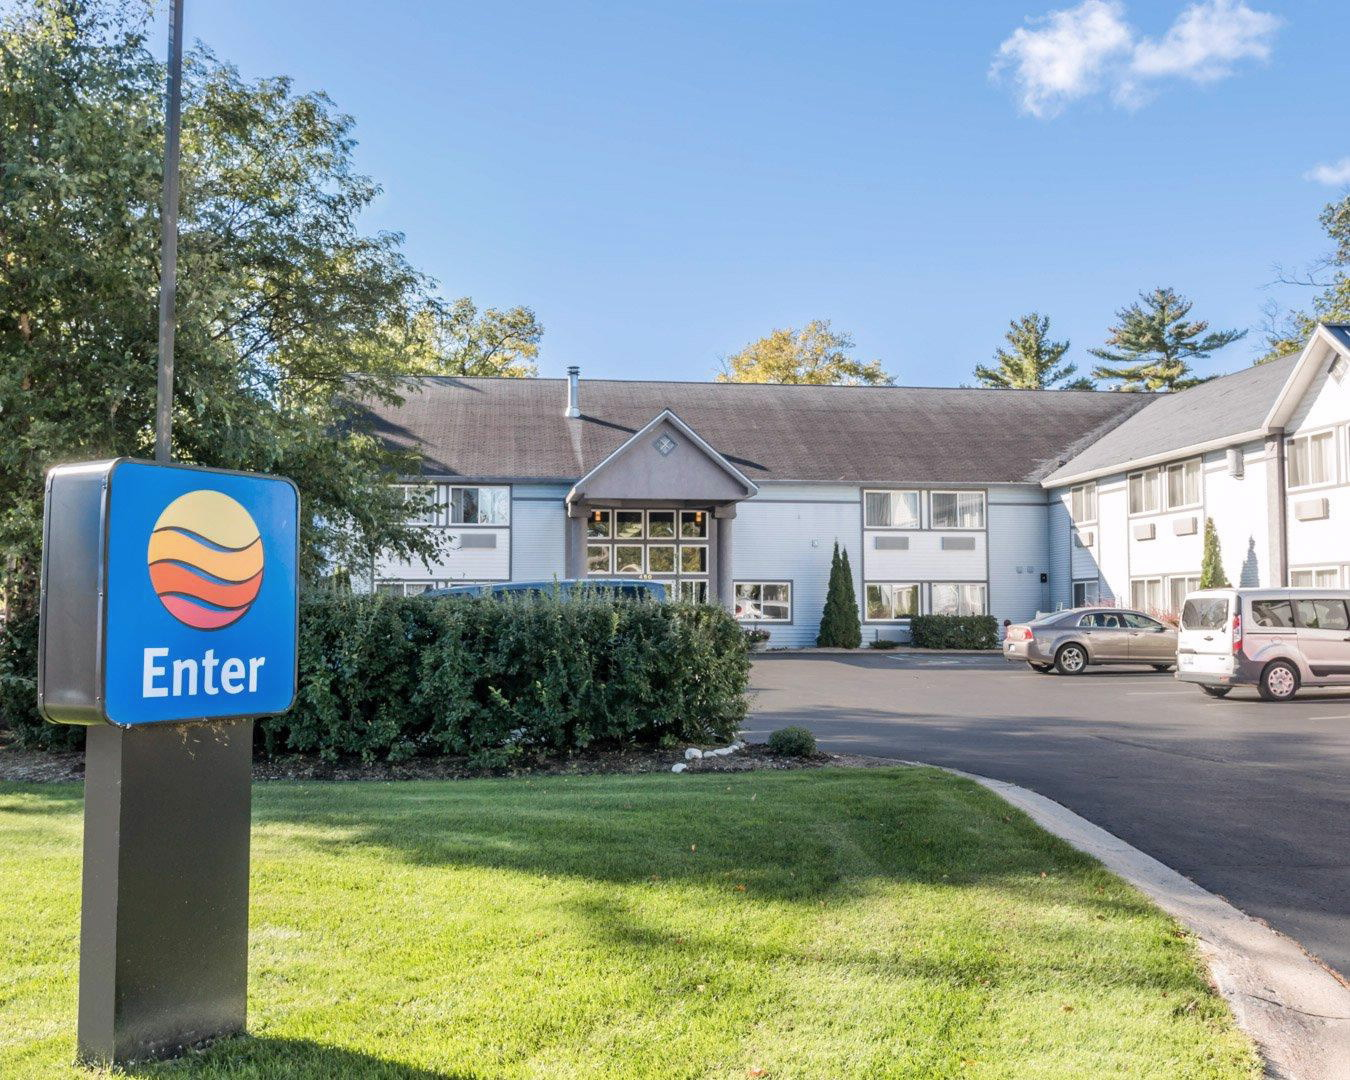 Comfort Inn Traverse City In Traverse City Mi Whitepages